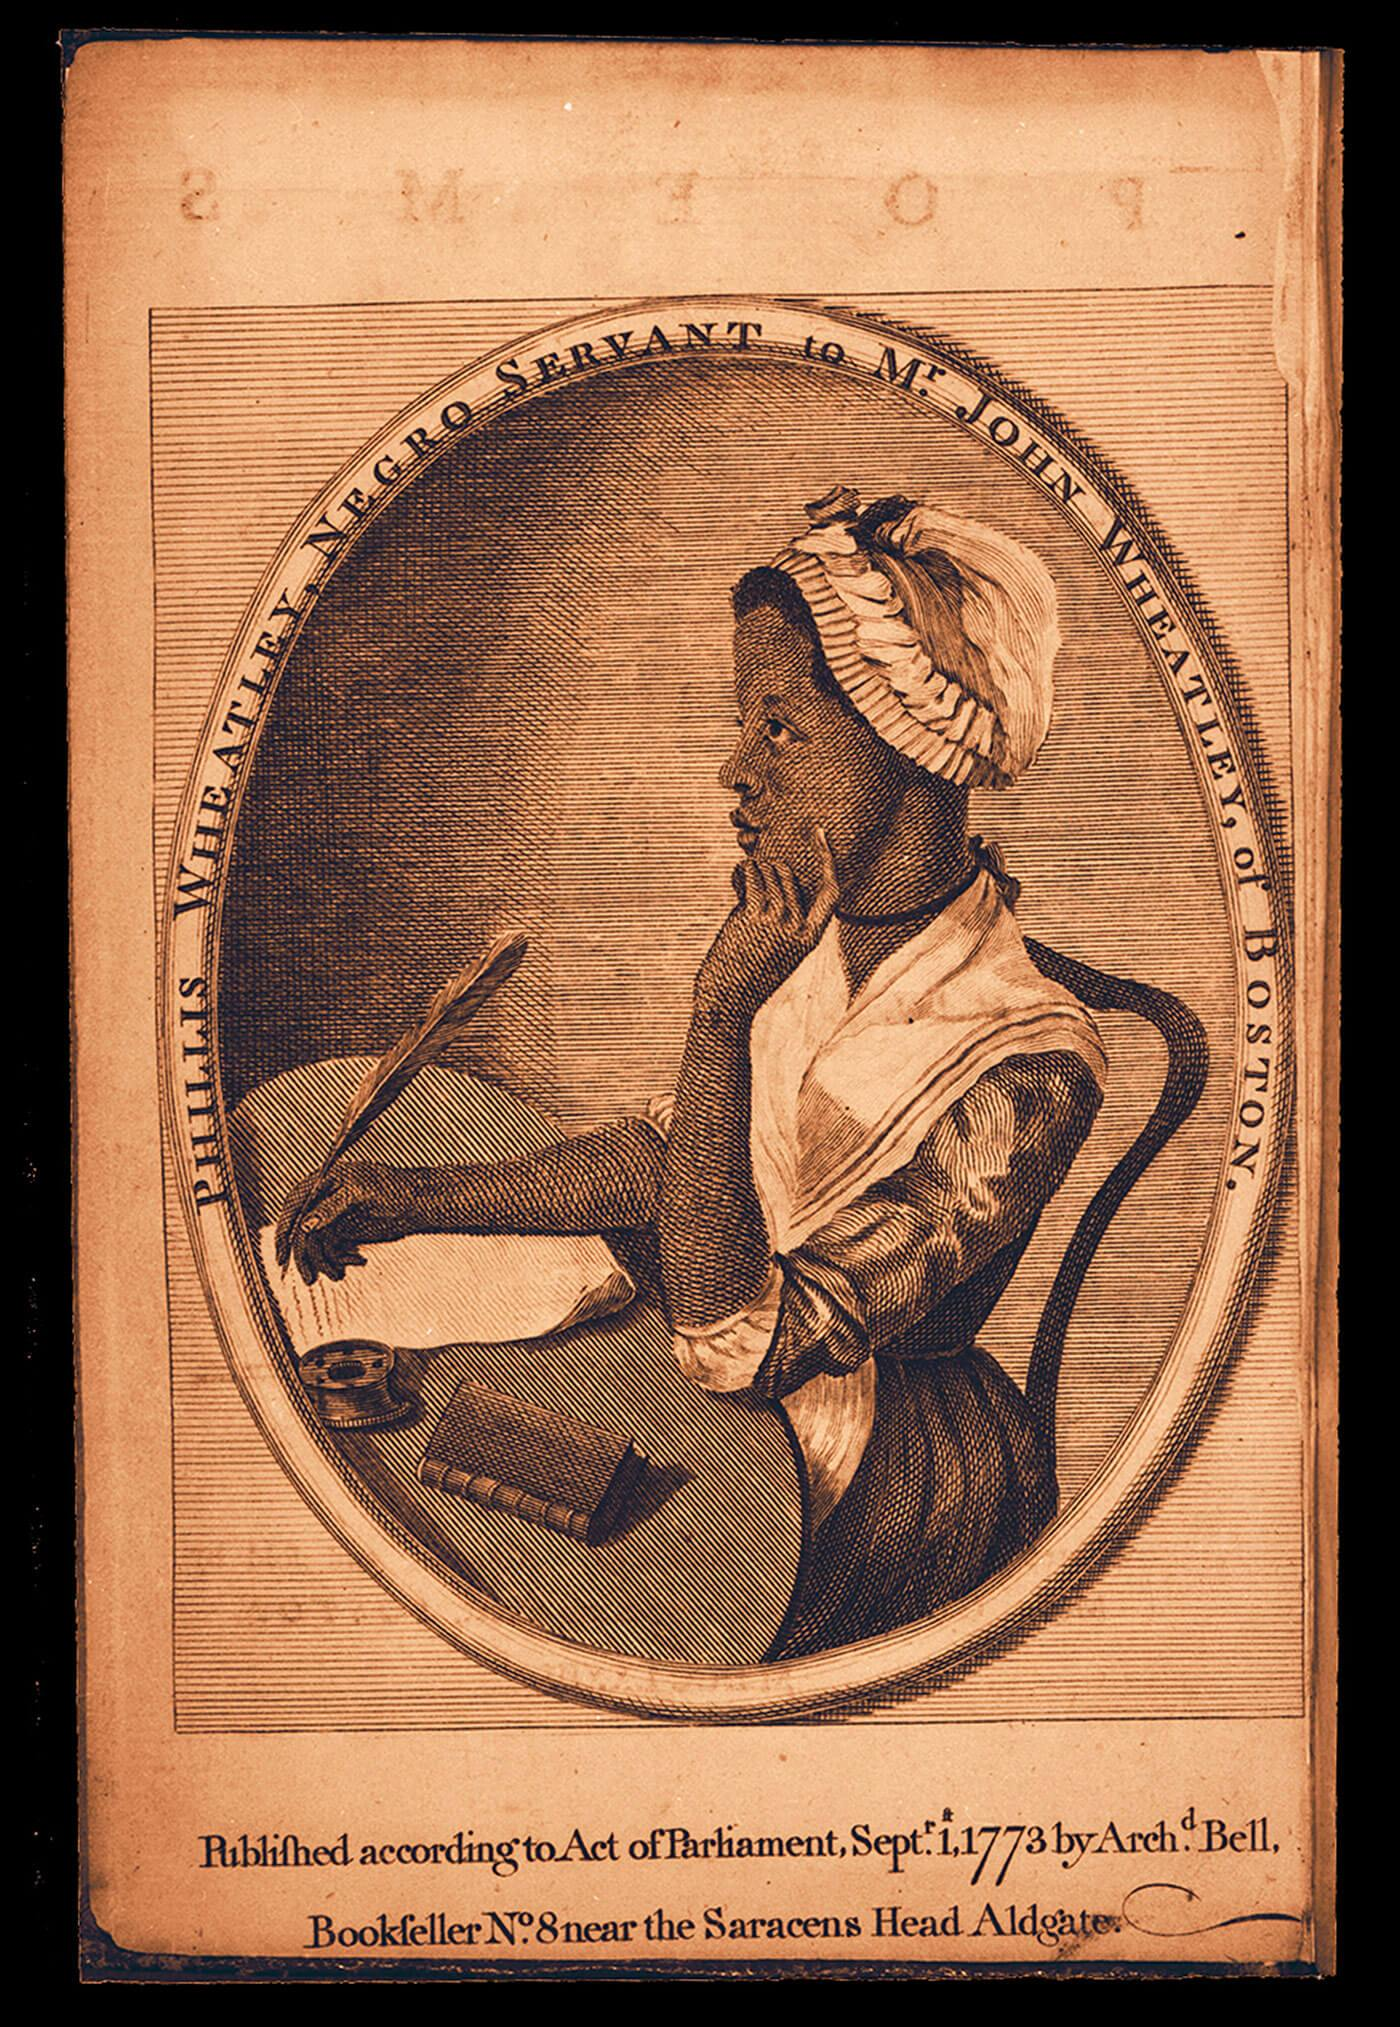 Phillis Wheatley, Poems on various subjects, religious and moral London: Printed for A. Bell, Bookseller, Aldgate; and sold by Messrs. Cox and Berry, King-Street, Boston, 1773A 773p